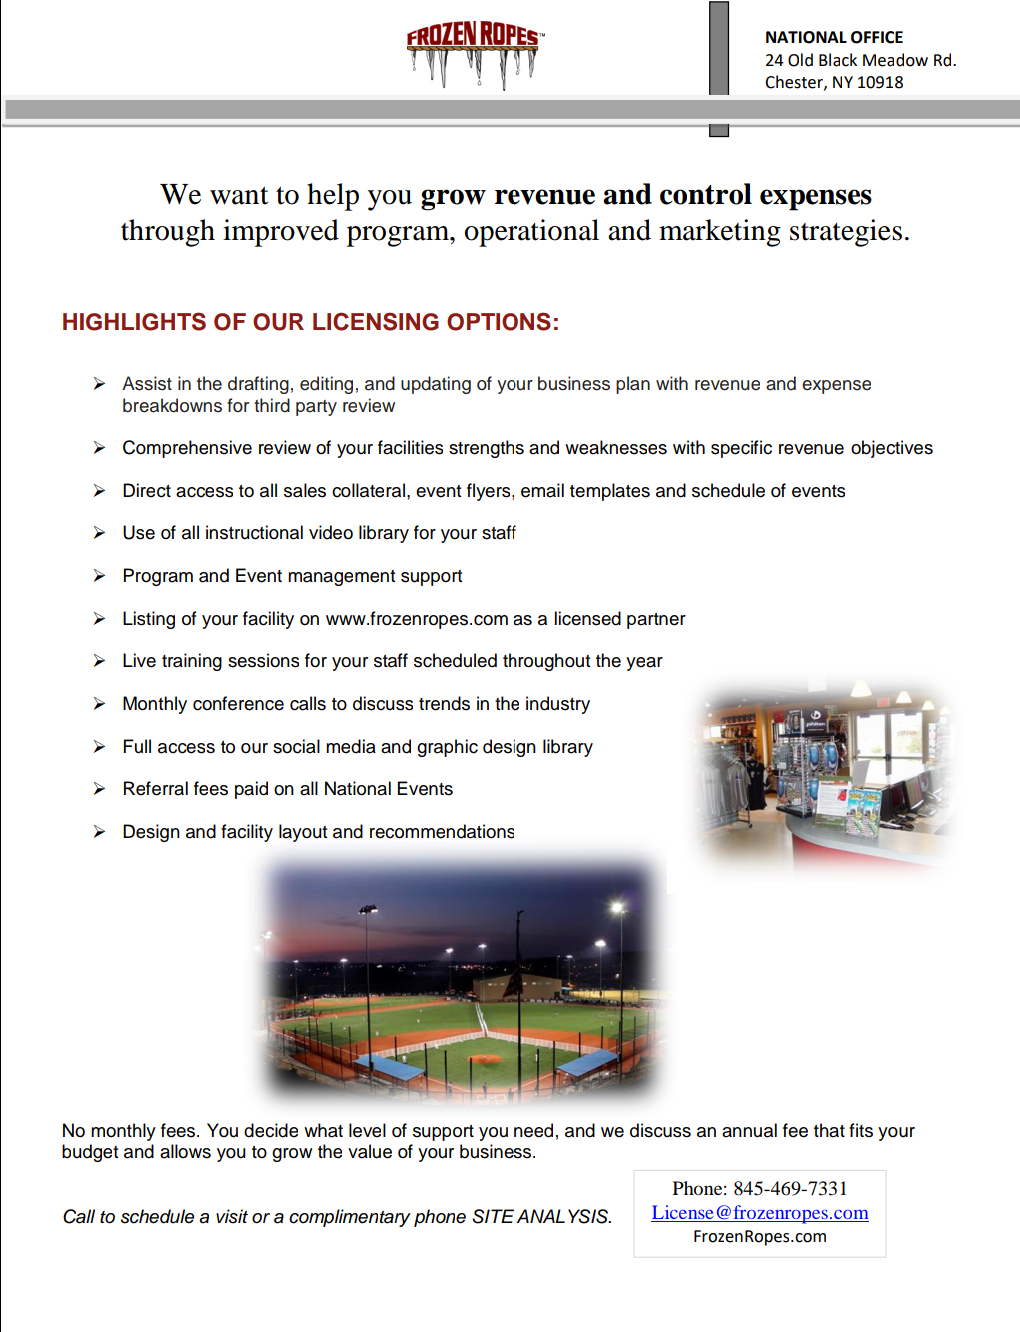 Frozen Ropes Licensing Options flyer